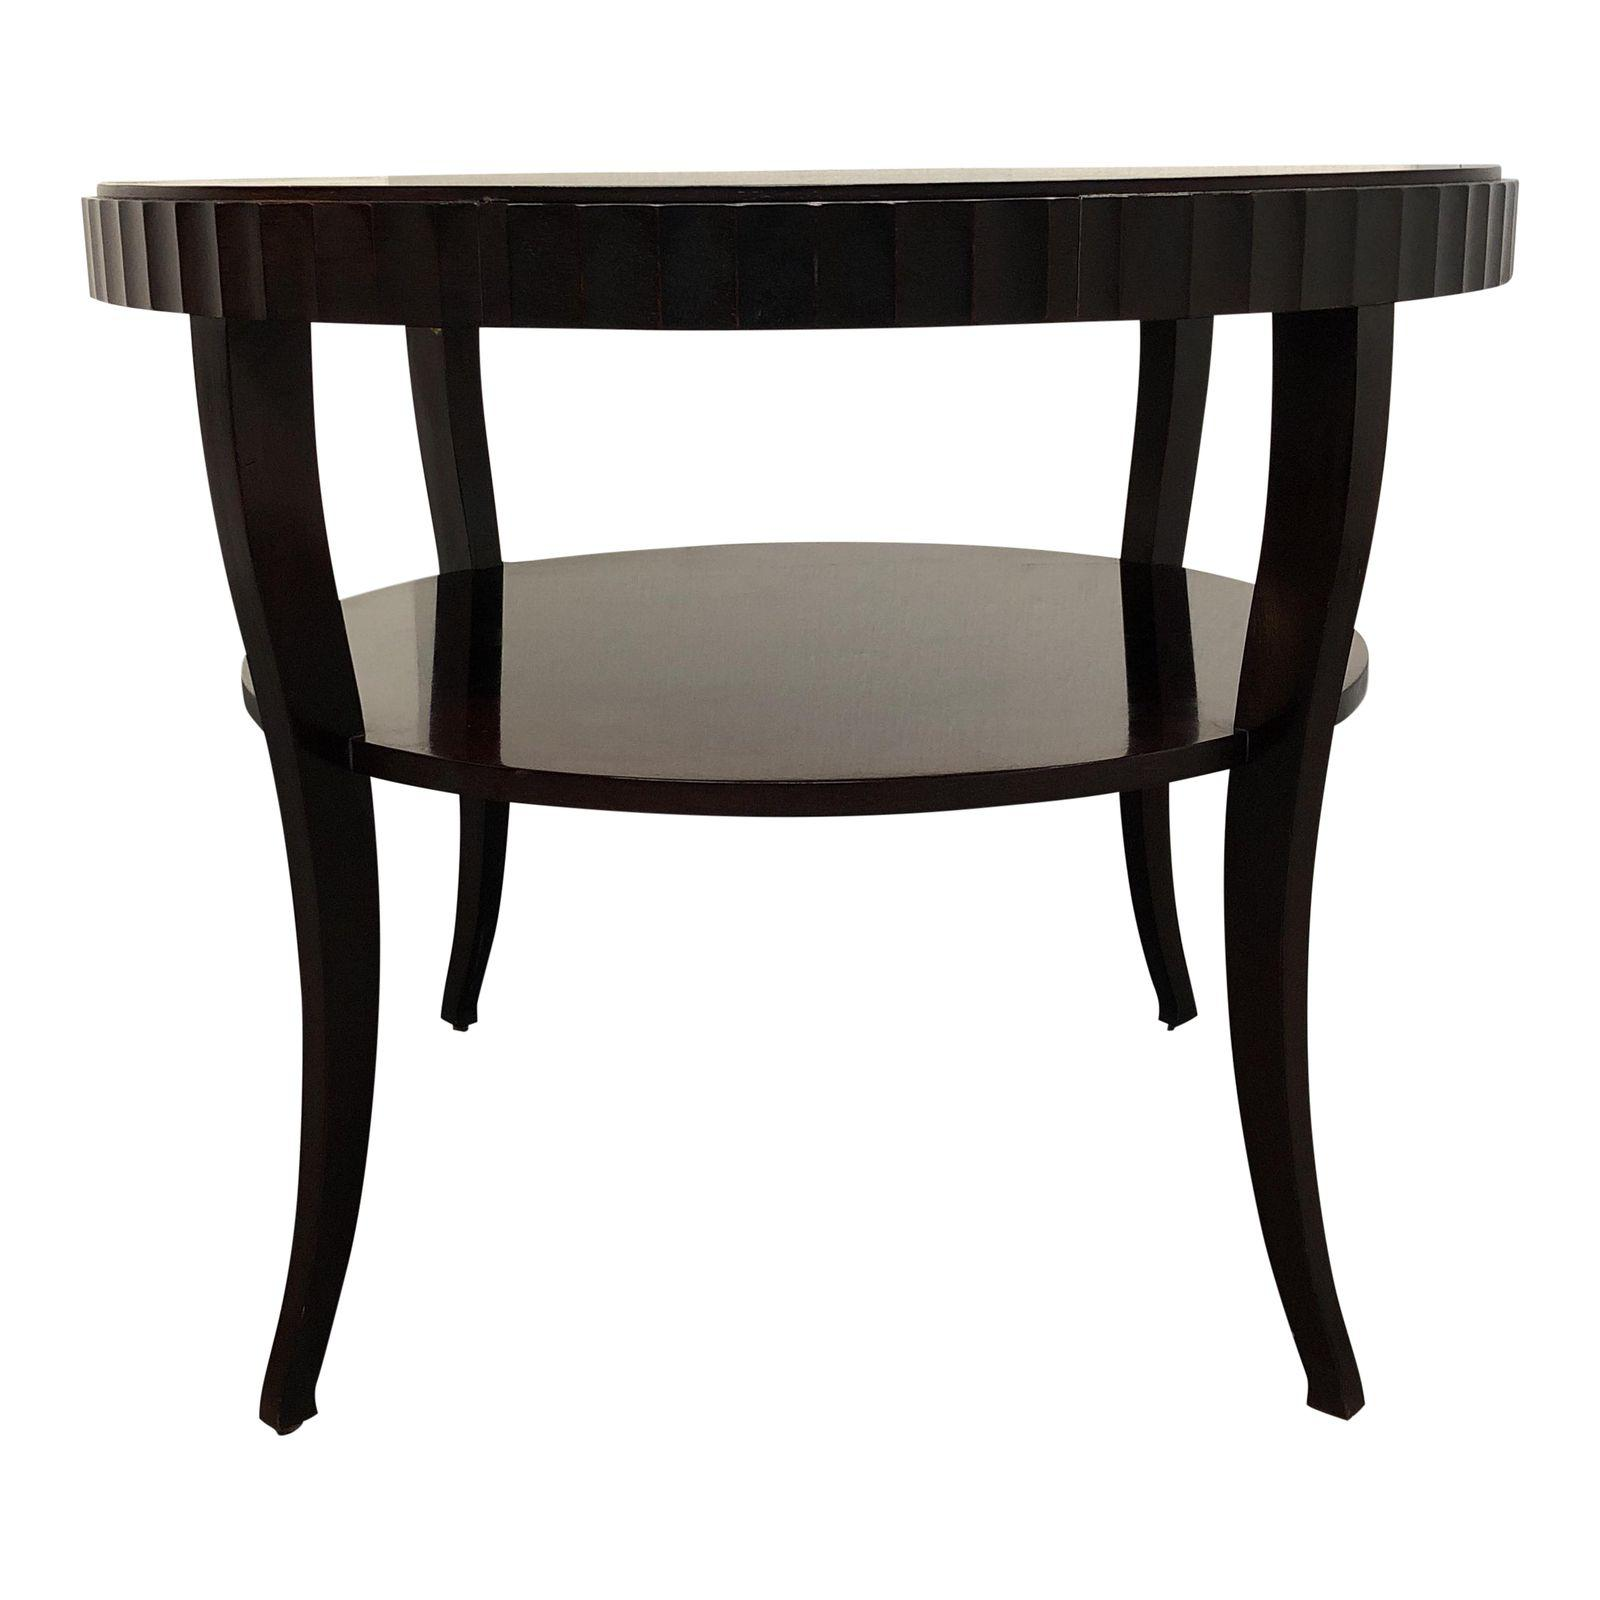 Superbe Baker Furniture Barbara Barry Side/Entry Table